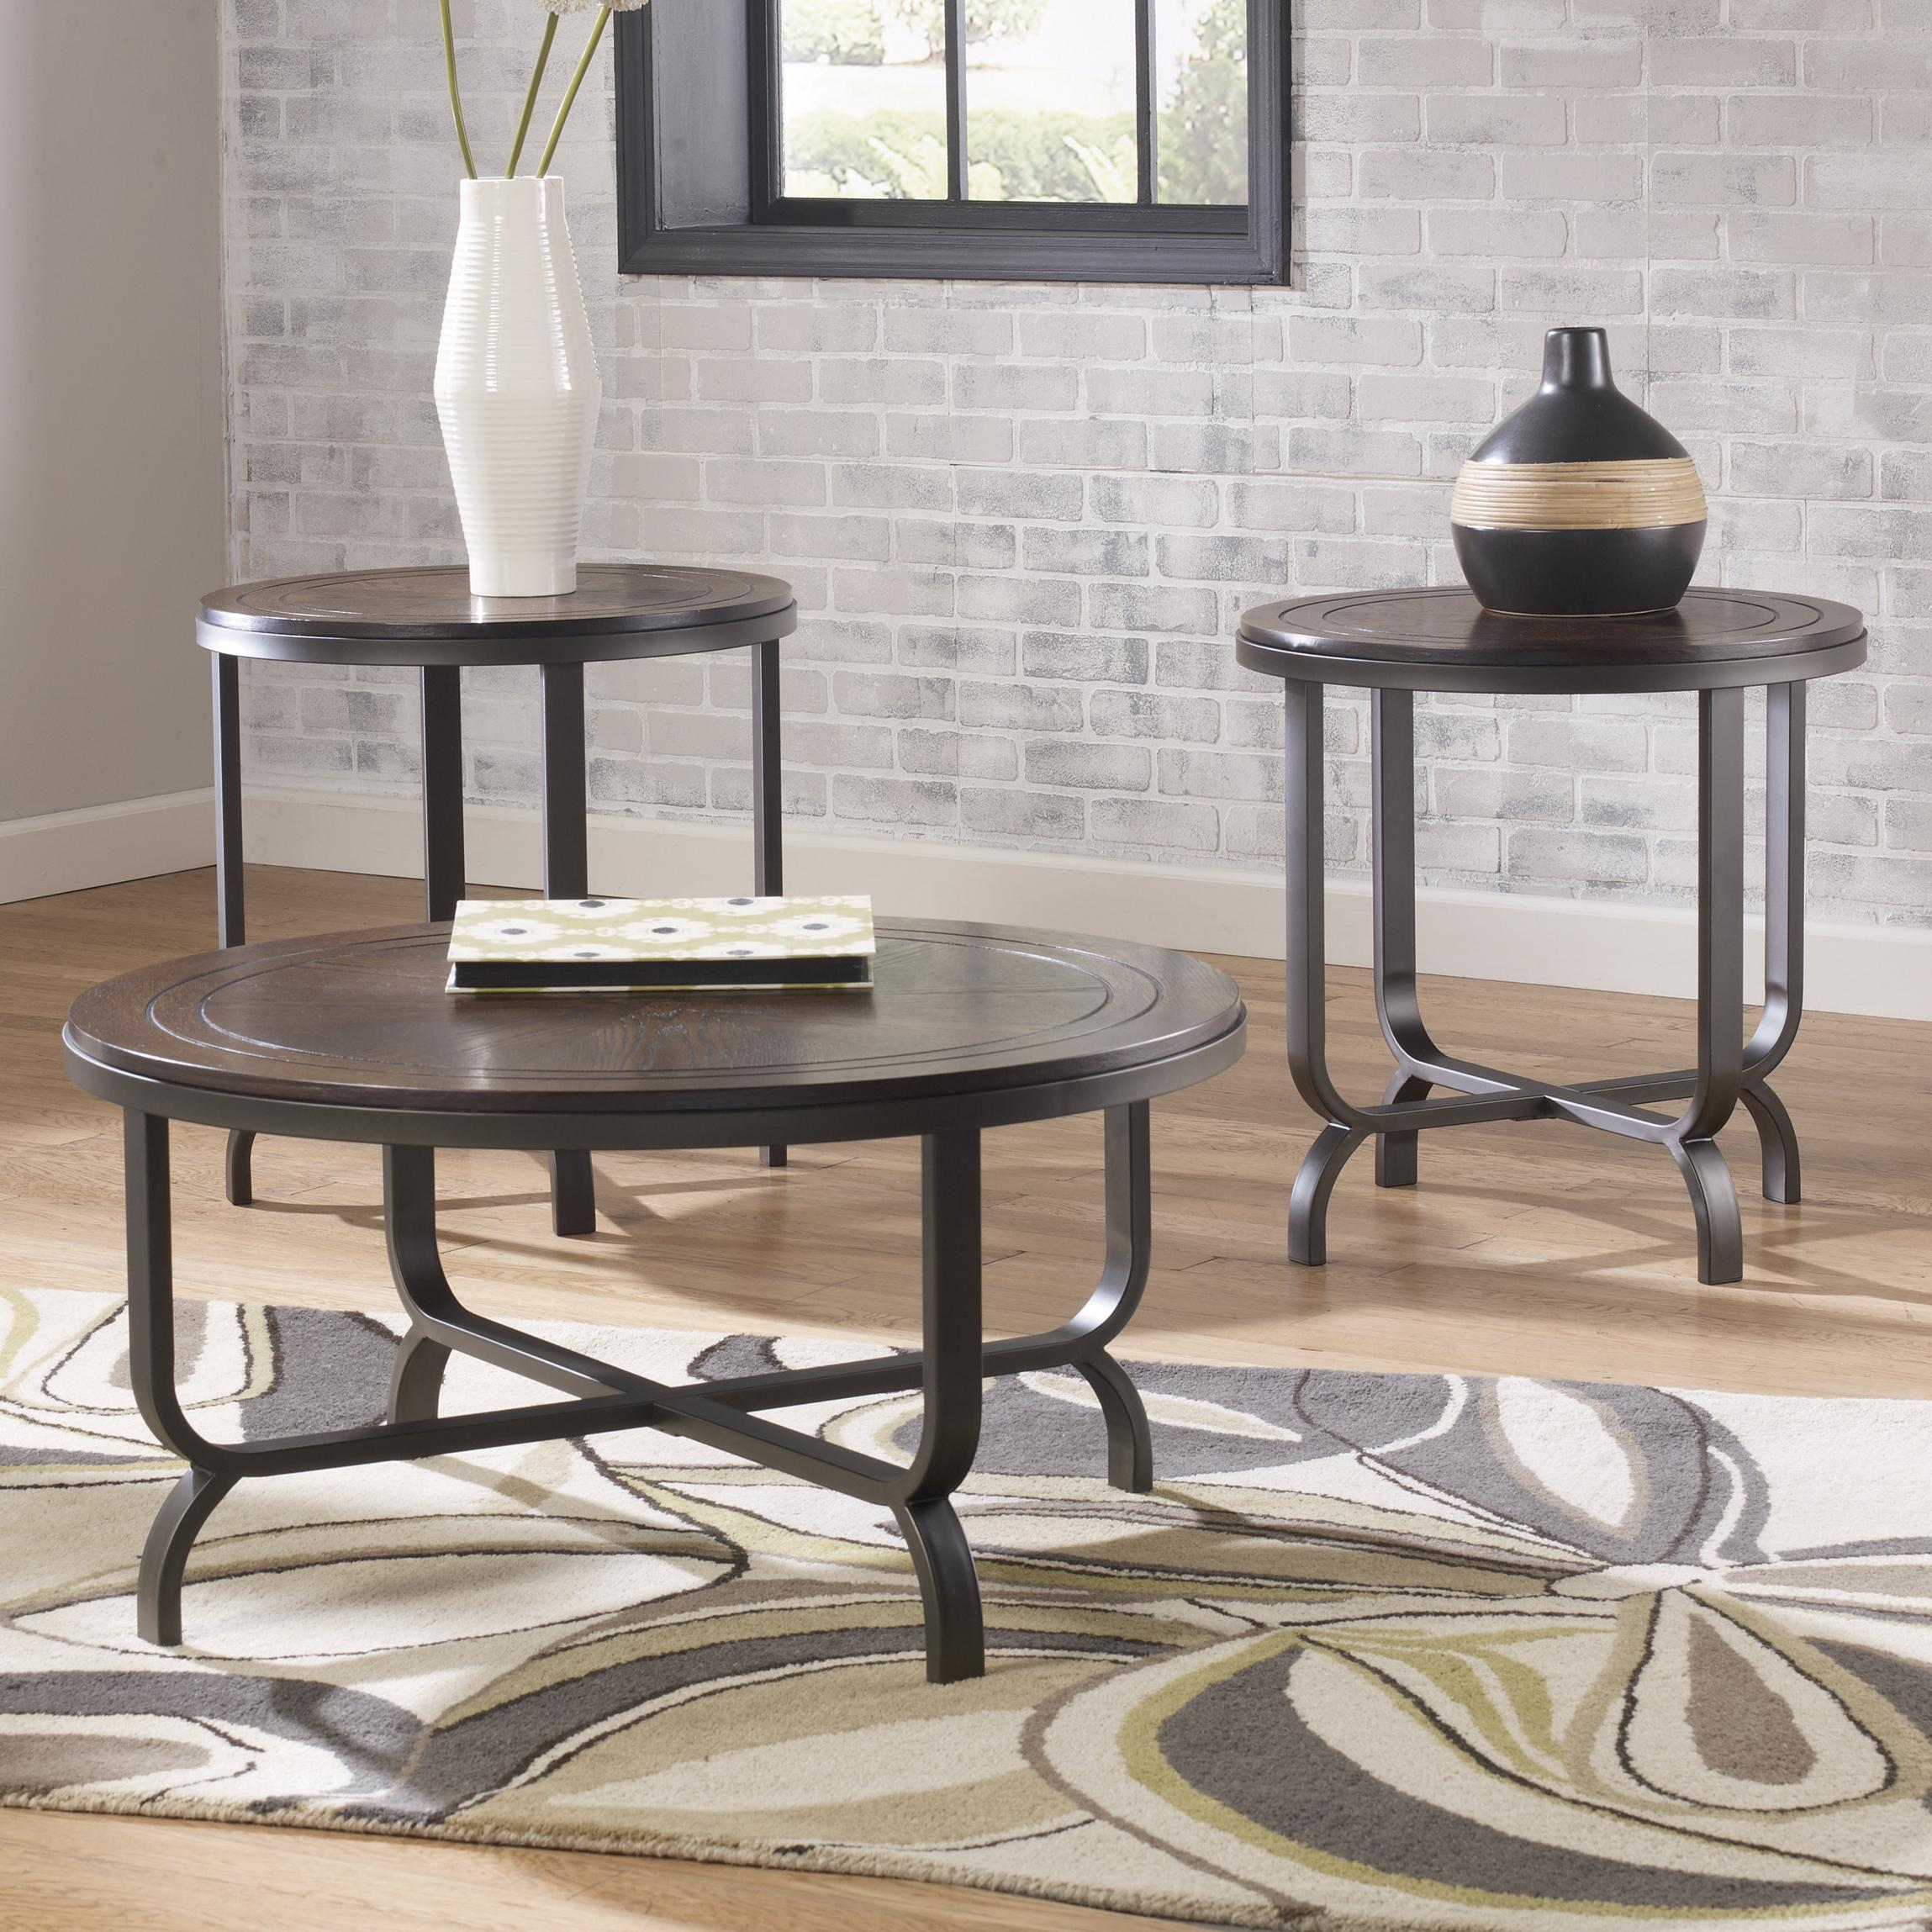 Ferlin Occasional Table Set by Signature Design by Ashley at Simply Home by Lindy's